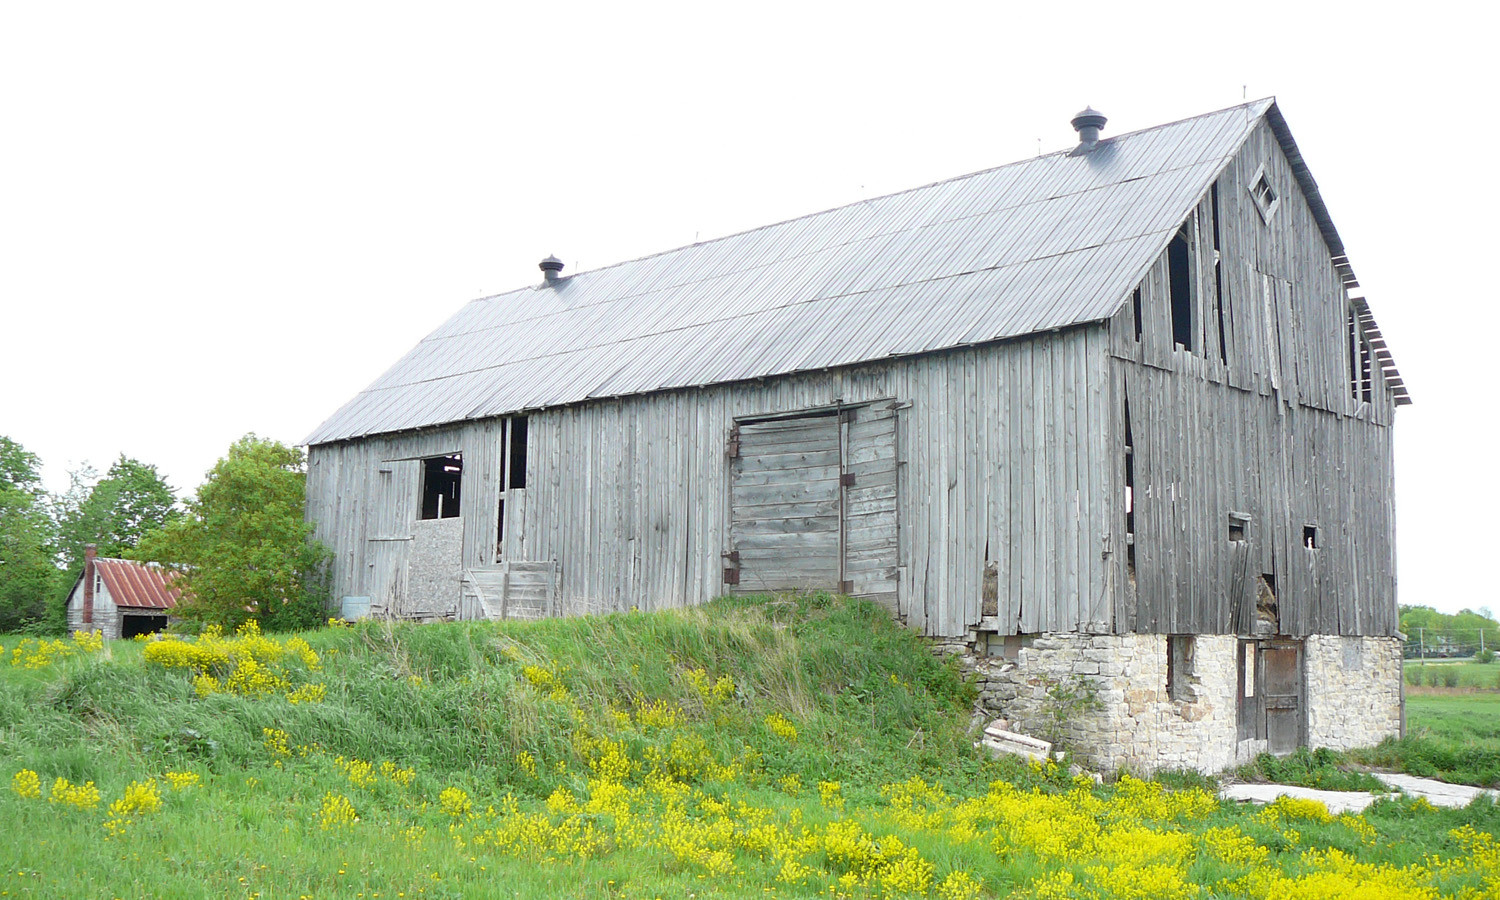 View of the Bank Barn Illustrating Built-up Earth Bank into the Second Level